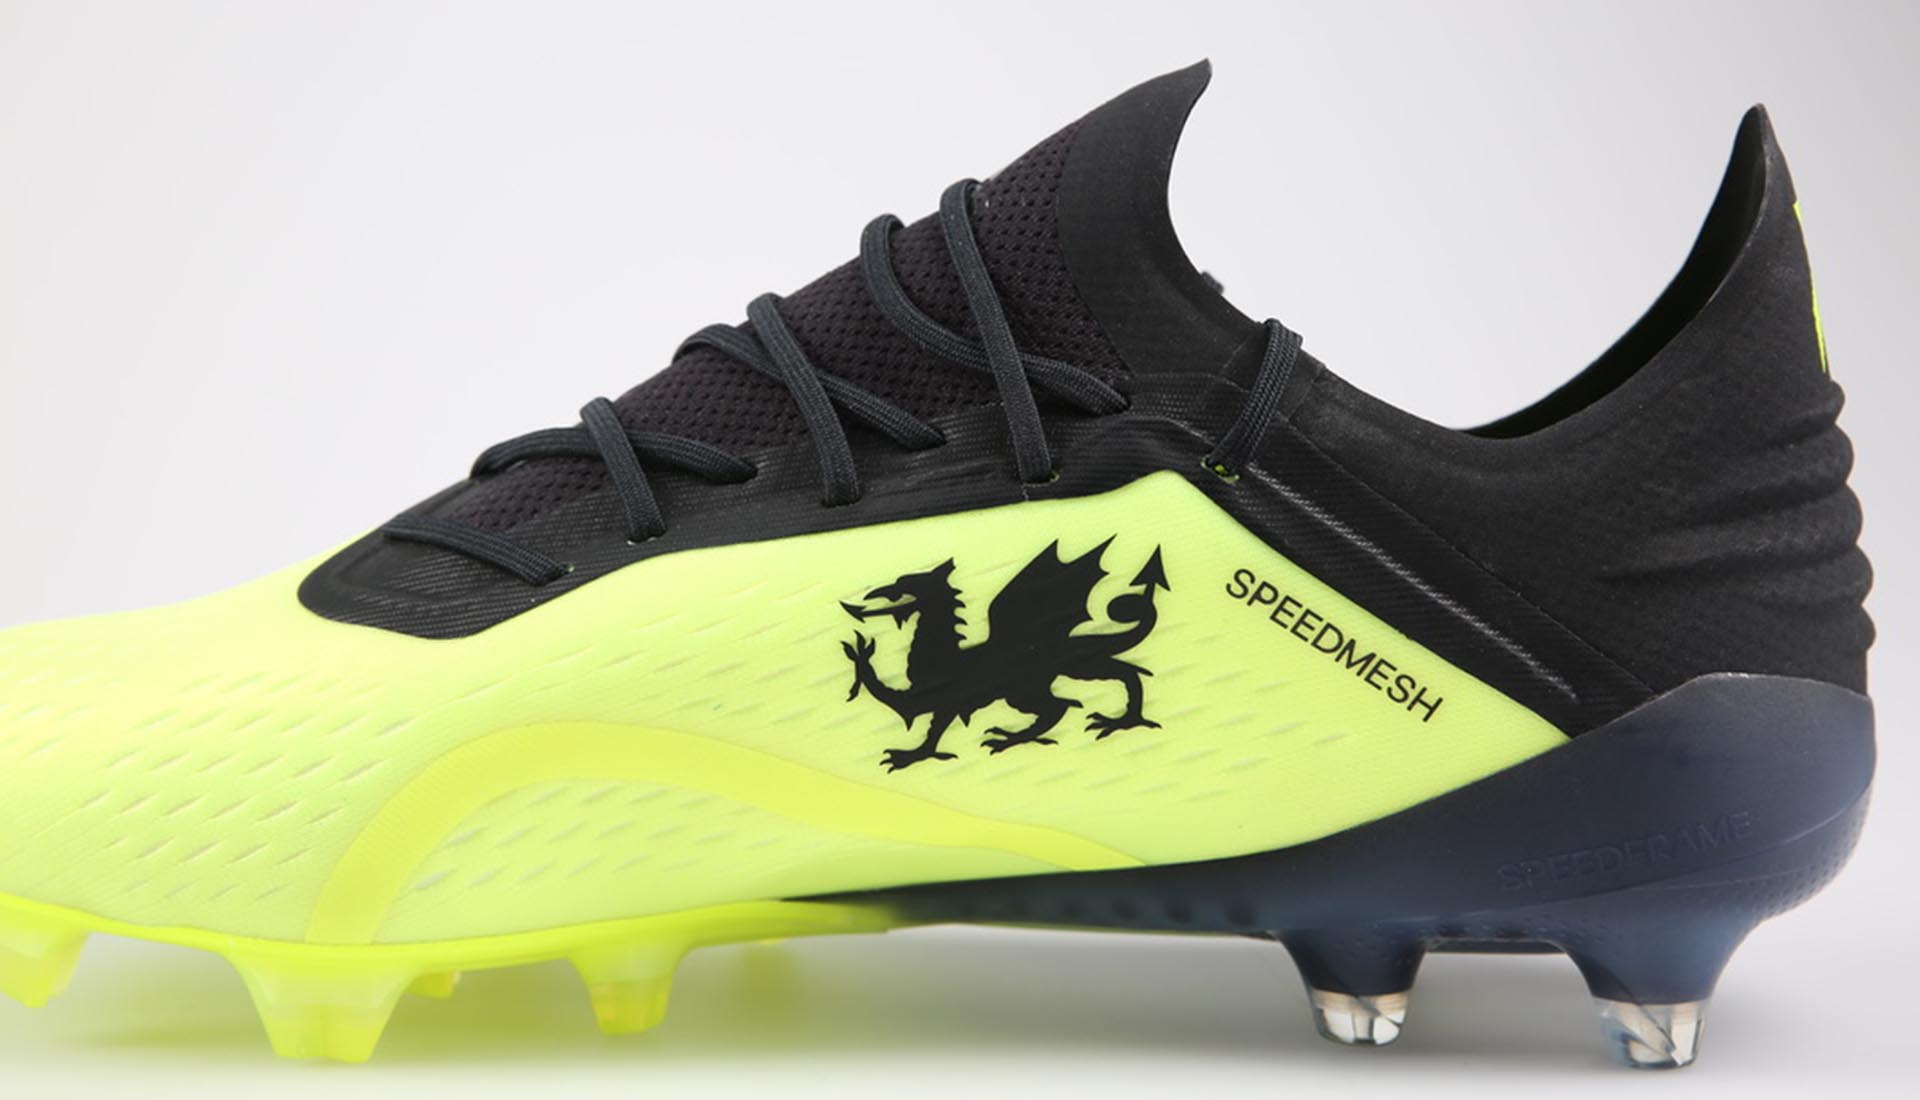 Bale Wales Record Boots_0001_GB12.jpg